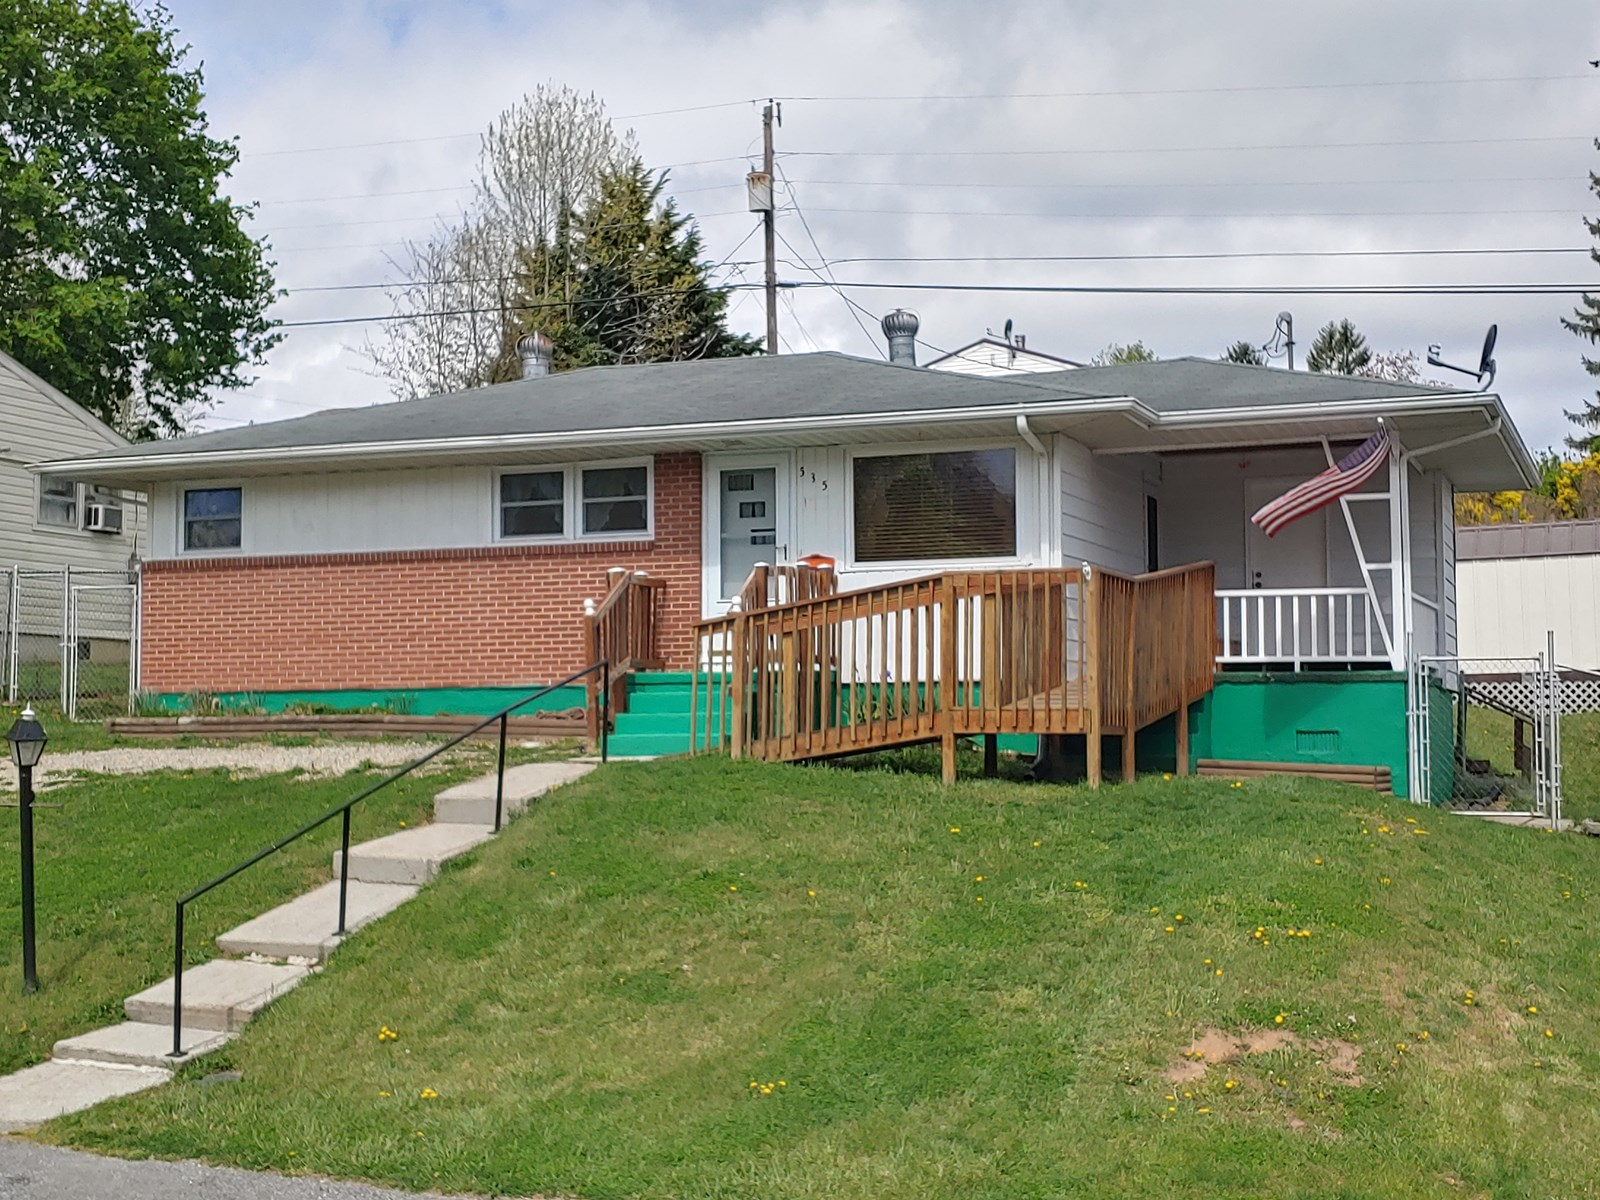 Home for Sale in the Town of Christiansburg VA!